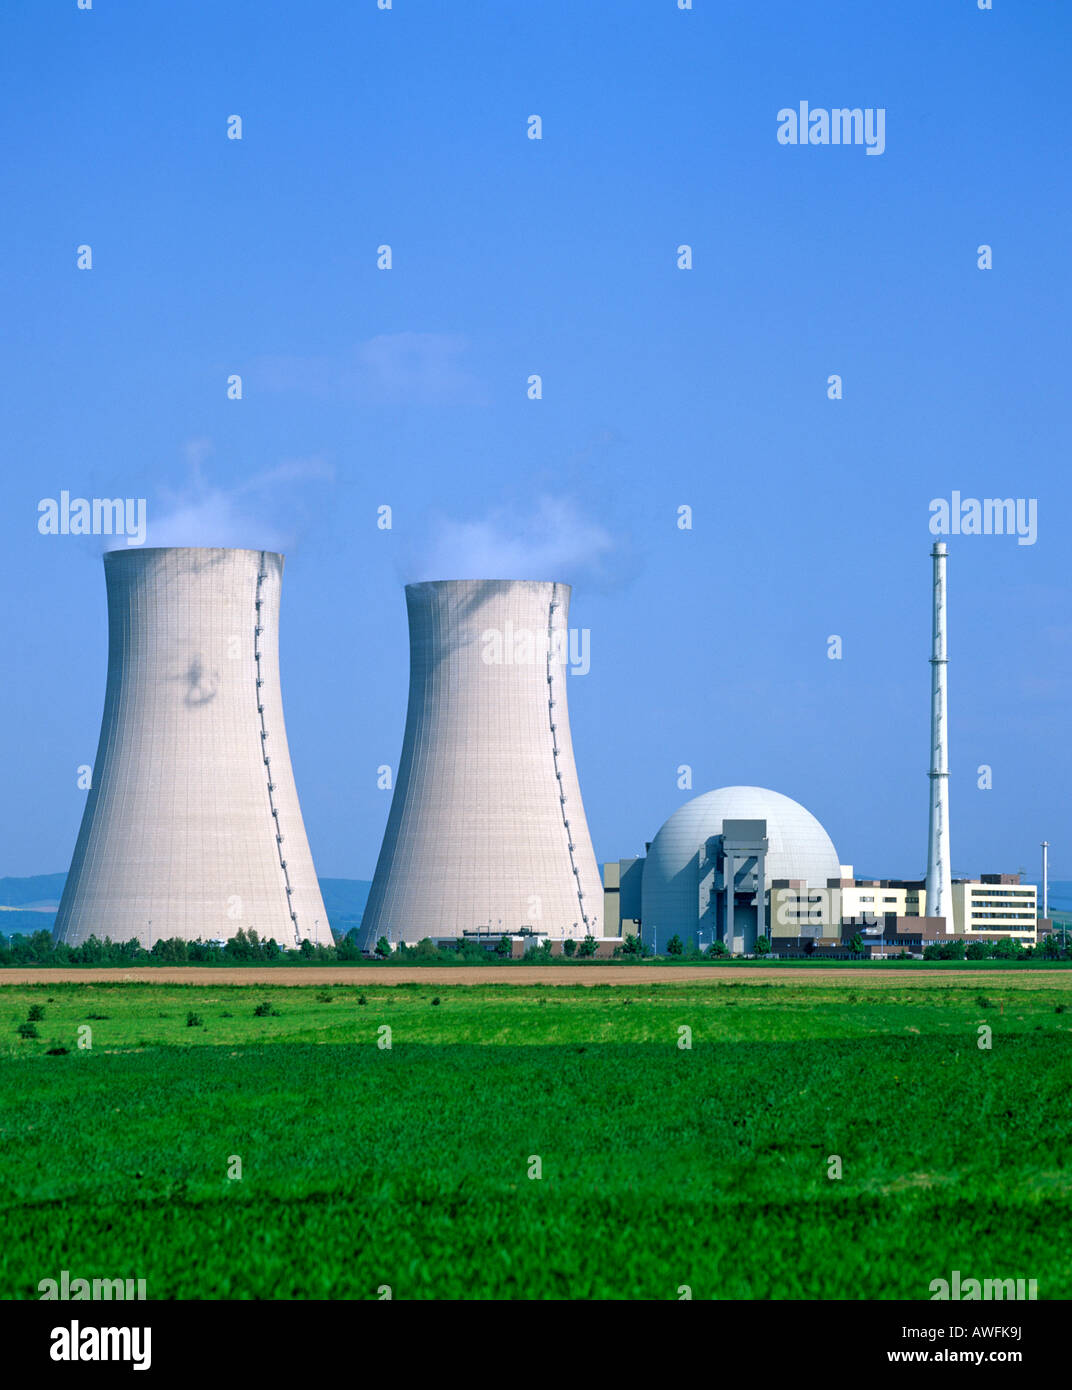 Cooling towers, Grohnde Nuclear Power Plant, Emmerthal, Hameln, Lower Saxony, Germany, Europe - Stock Image